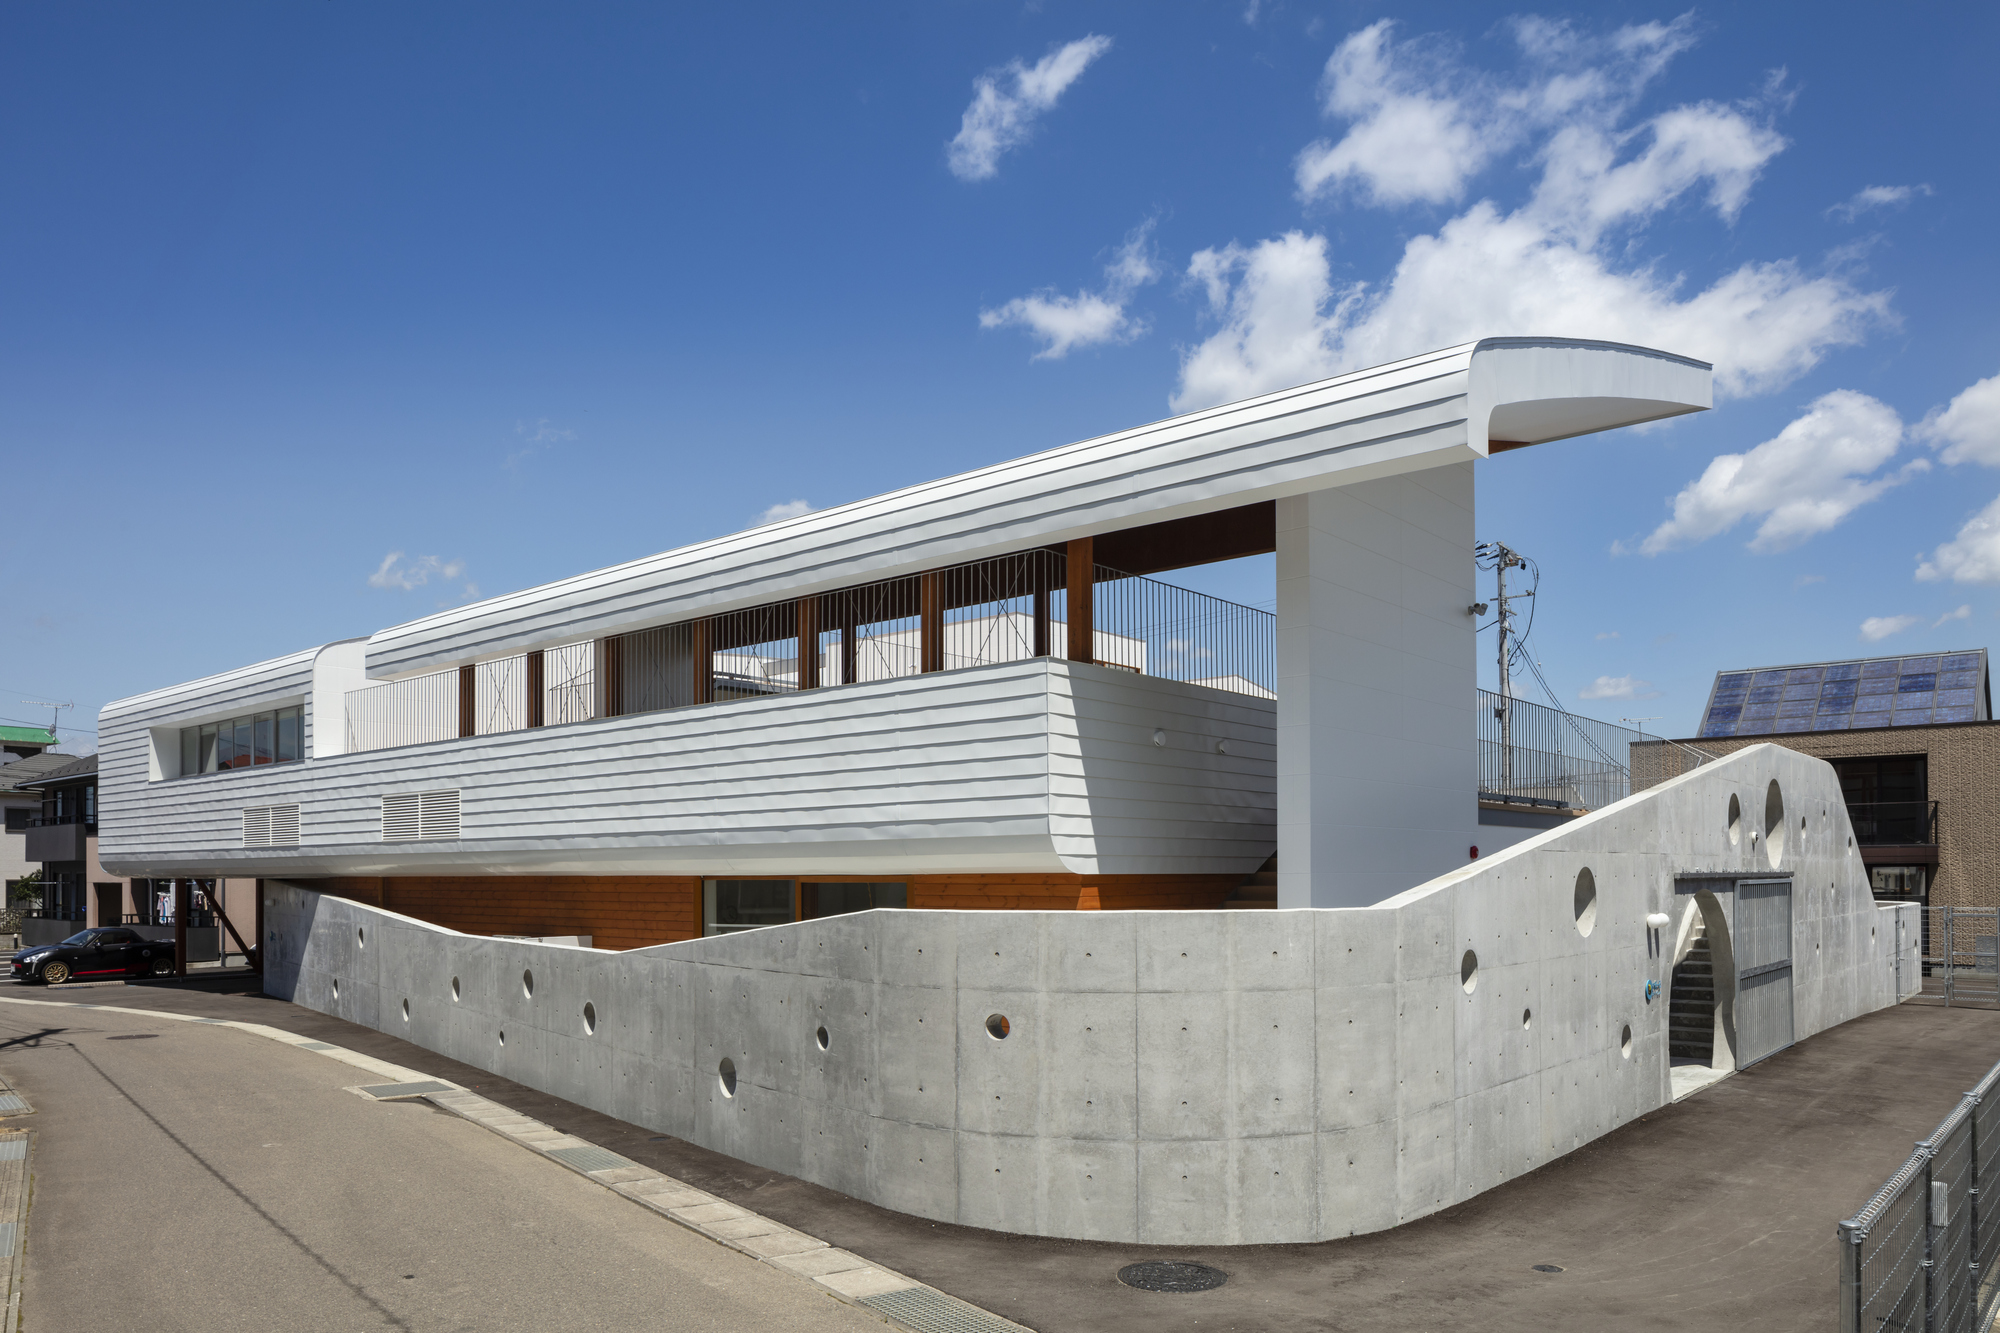 Kindergarten architecture and design | ArchDaily